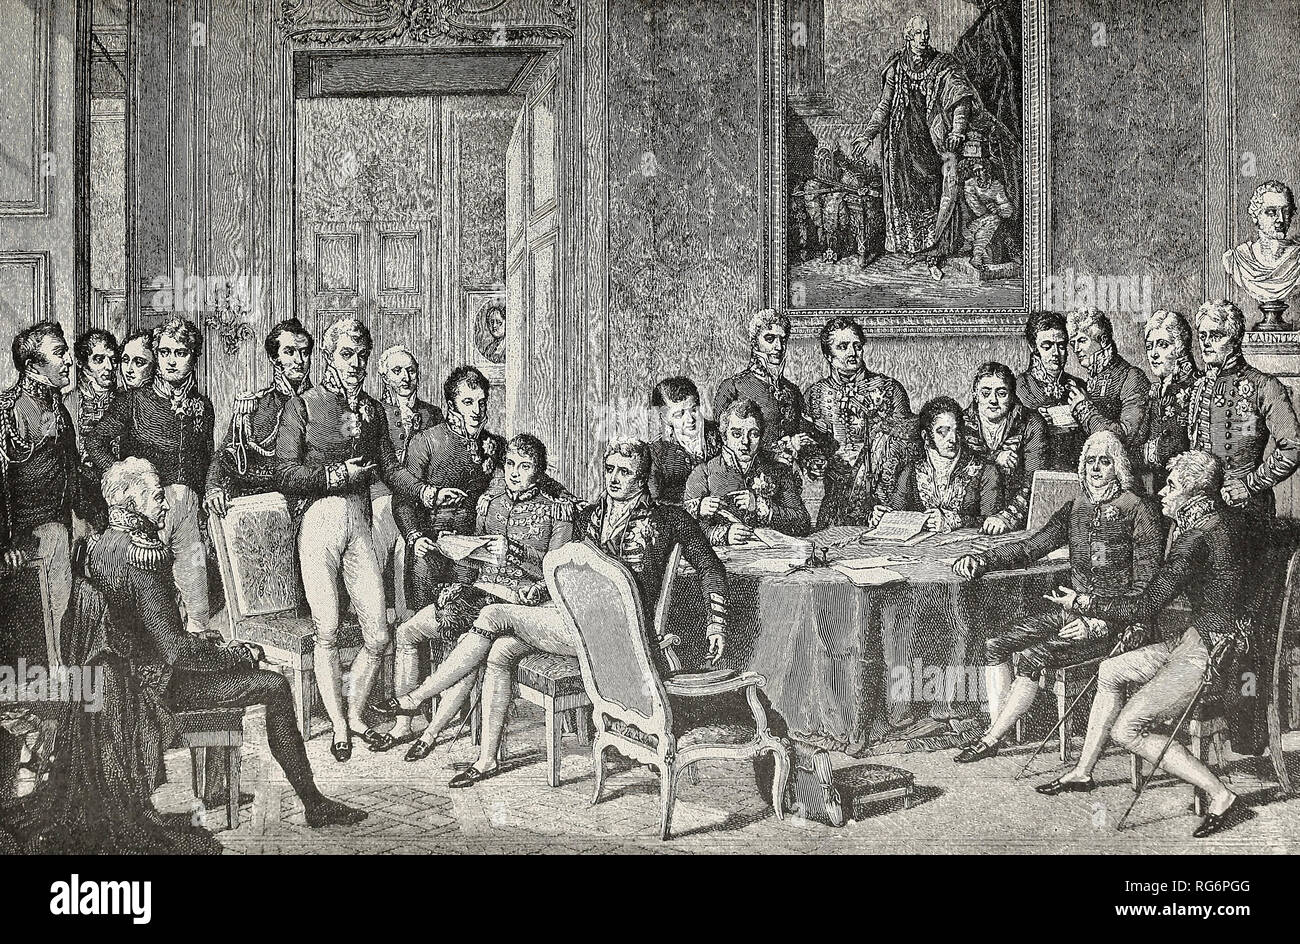 The Congress of Vienna - The celebrated gathering of Statesman to reconstruct Europe after Napoleon's overthrow - Stock Image